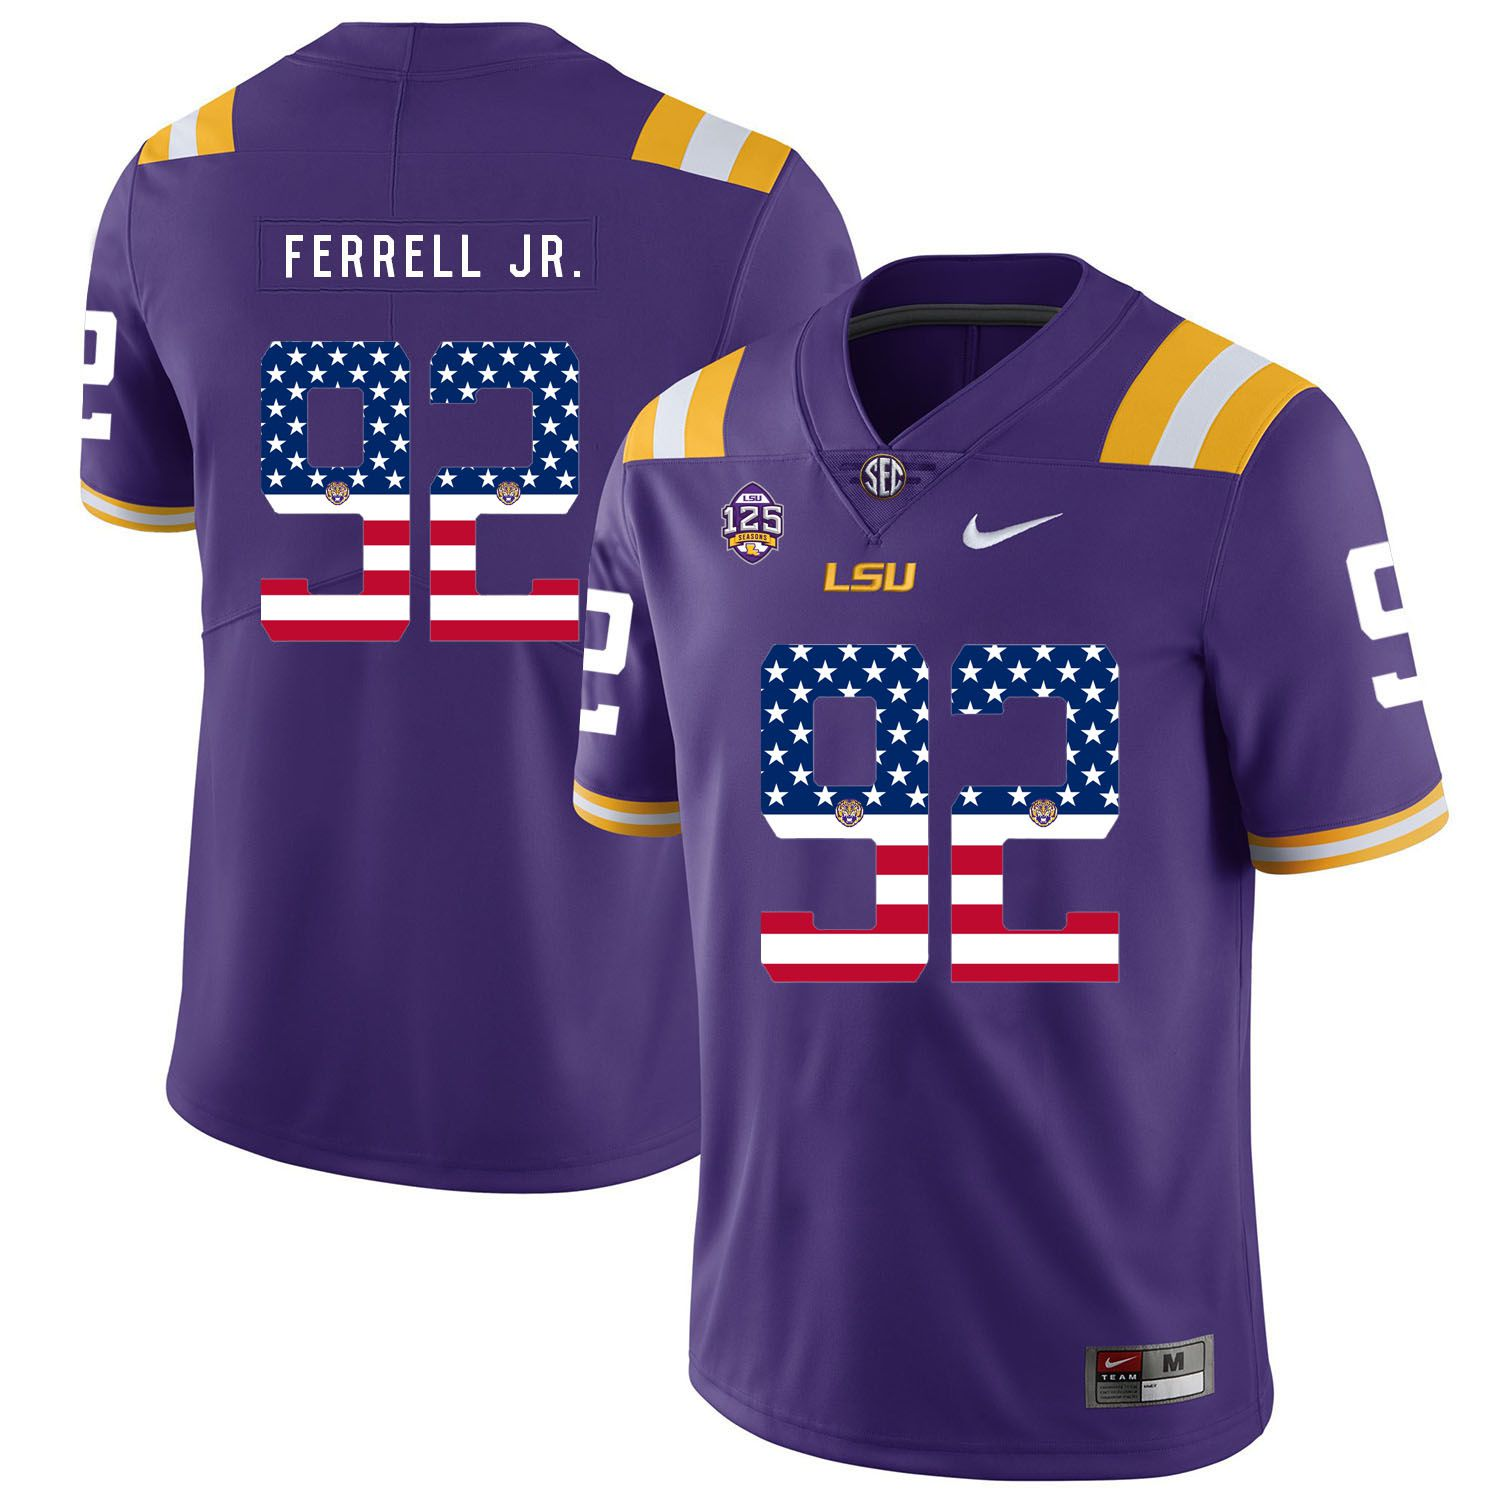 Men LSU Tigers 92 Ferrell jr Purple Flag Customized NCAA Jerseys